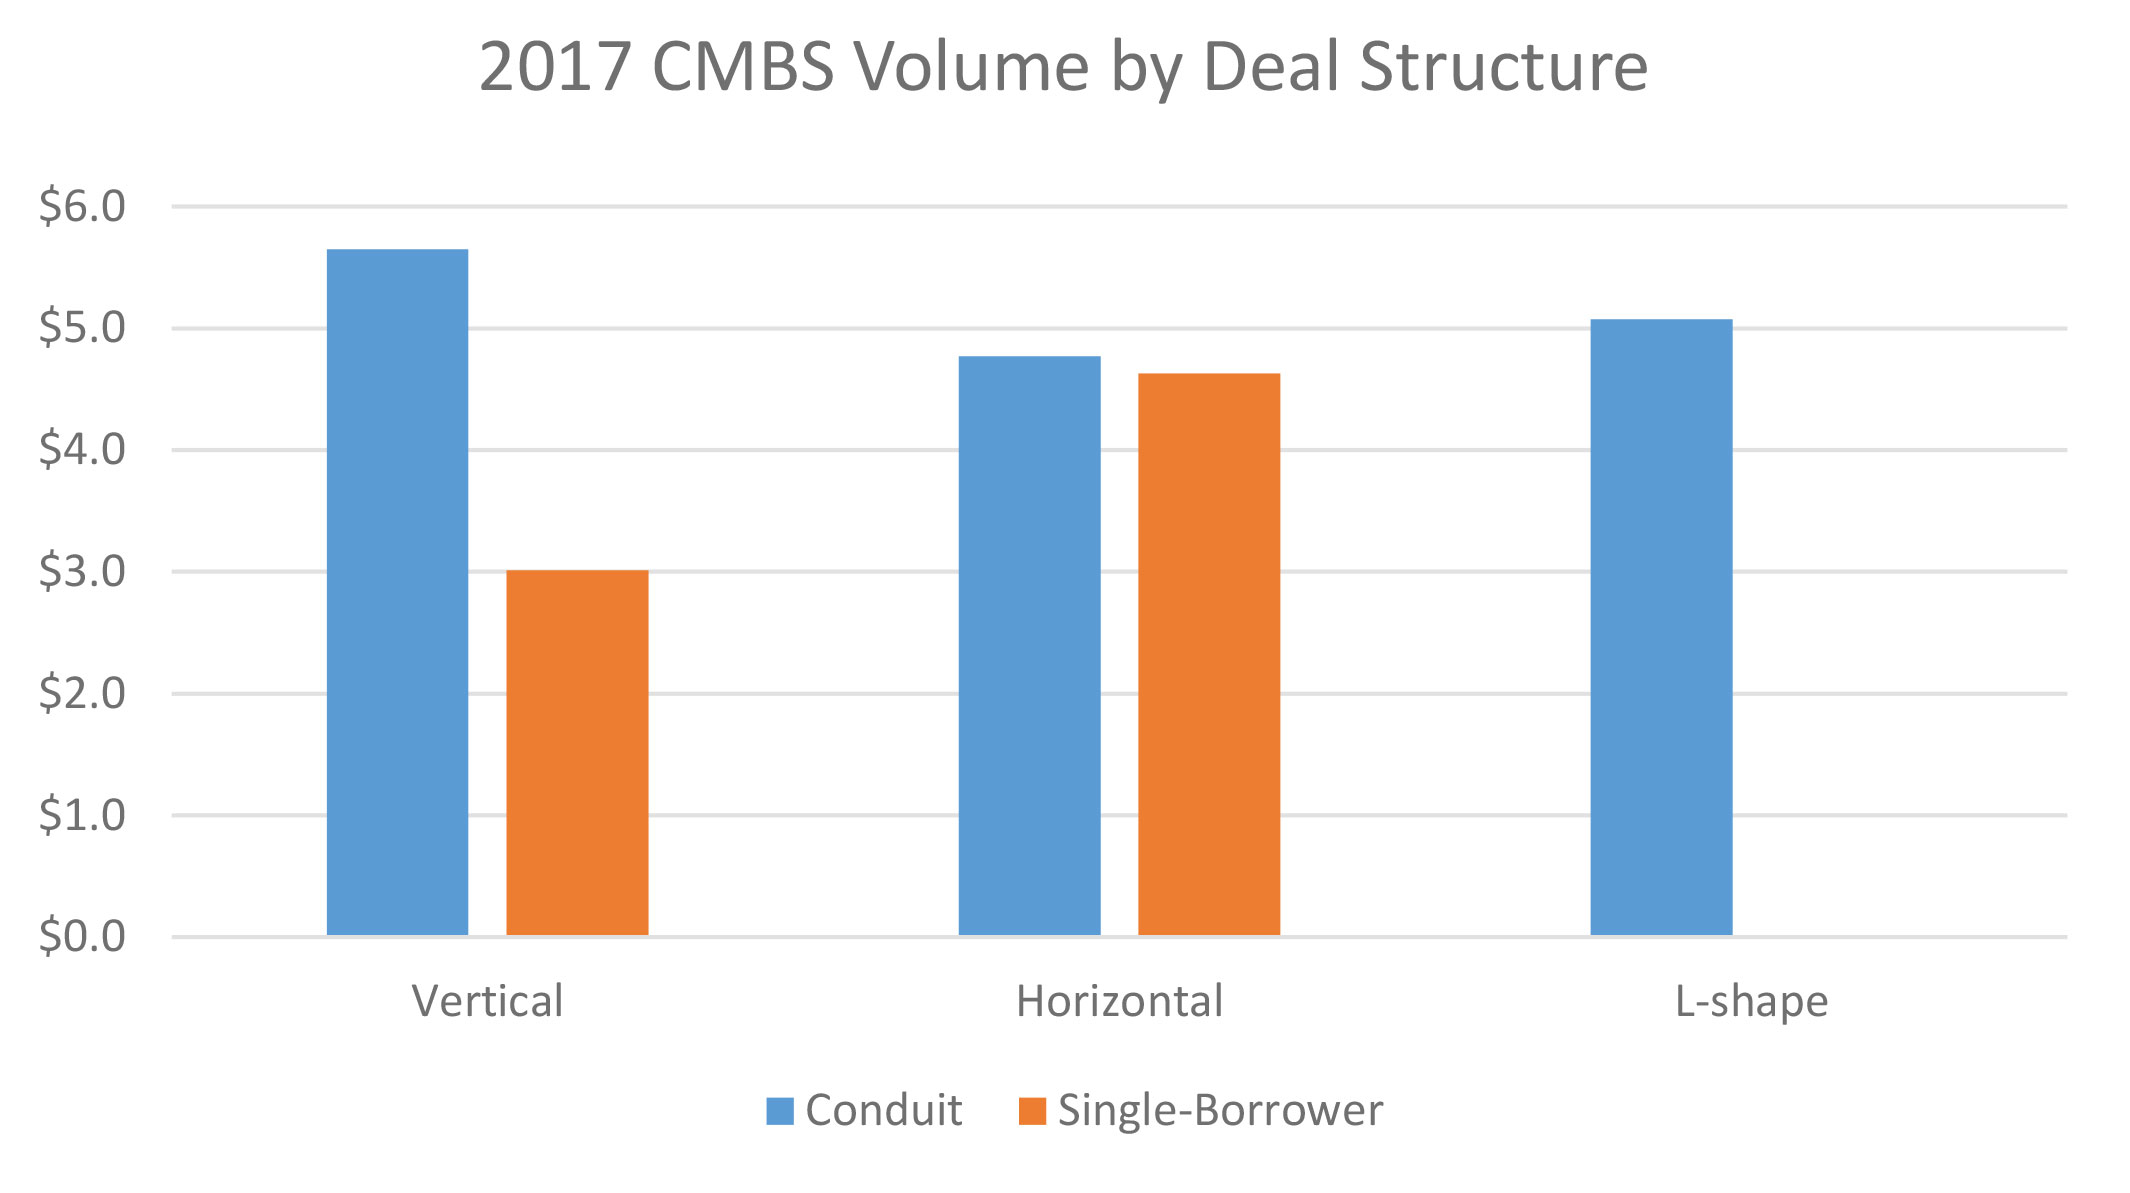 Note: Data as of May 26, 2017. Sources: Commercial Mortgage Alert, Yardi Matrix